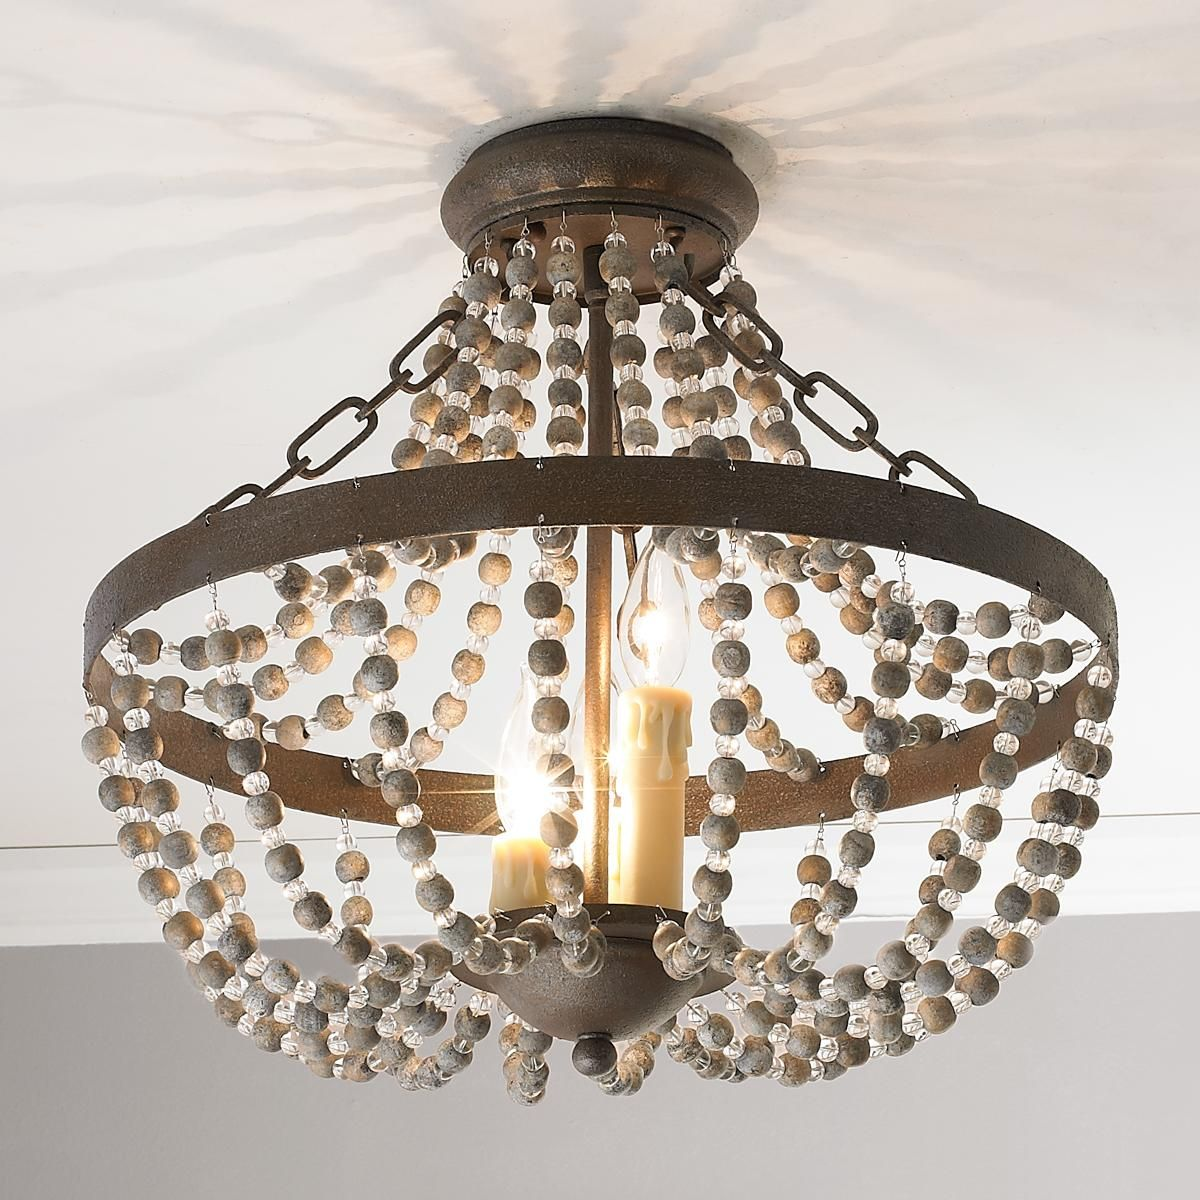 Rustic French Country Beaded Ceiling Light Convertible Country